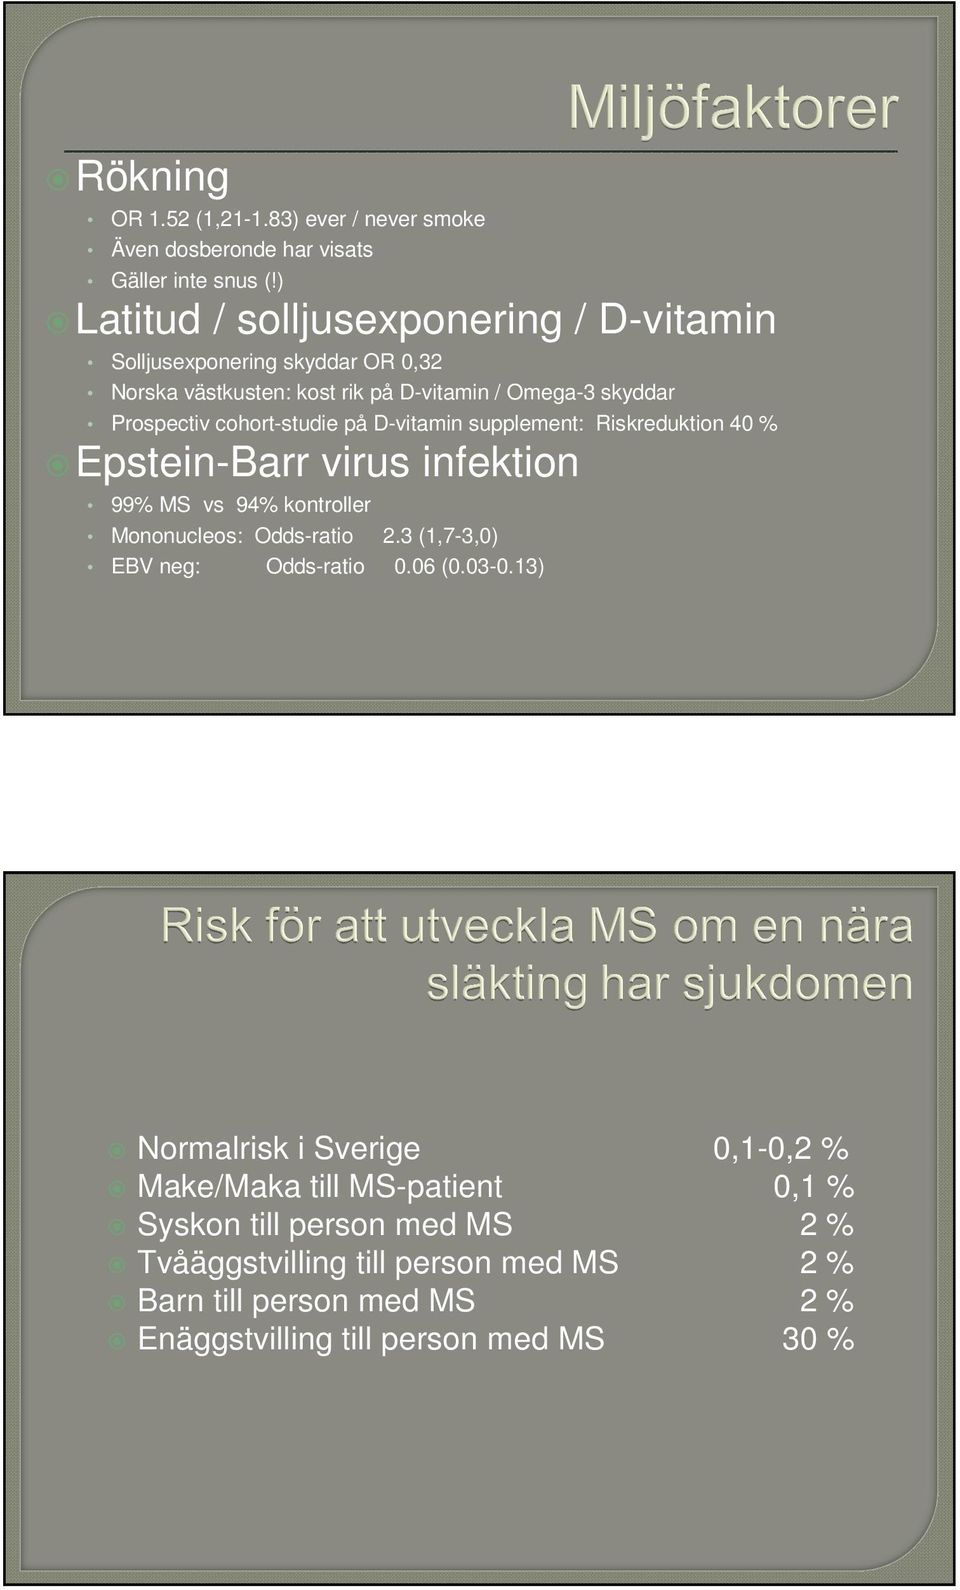 cohort-studie på D-vitamin supplement: Riskreduktion 40 % Epstein-Barr virus infektion 99% MS vs 94% kontroller Mononucleos: Odds-ratio 2.